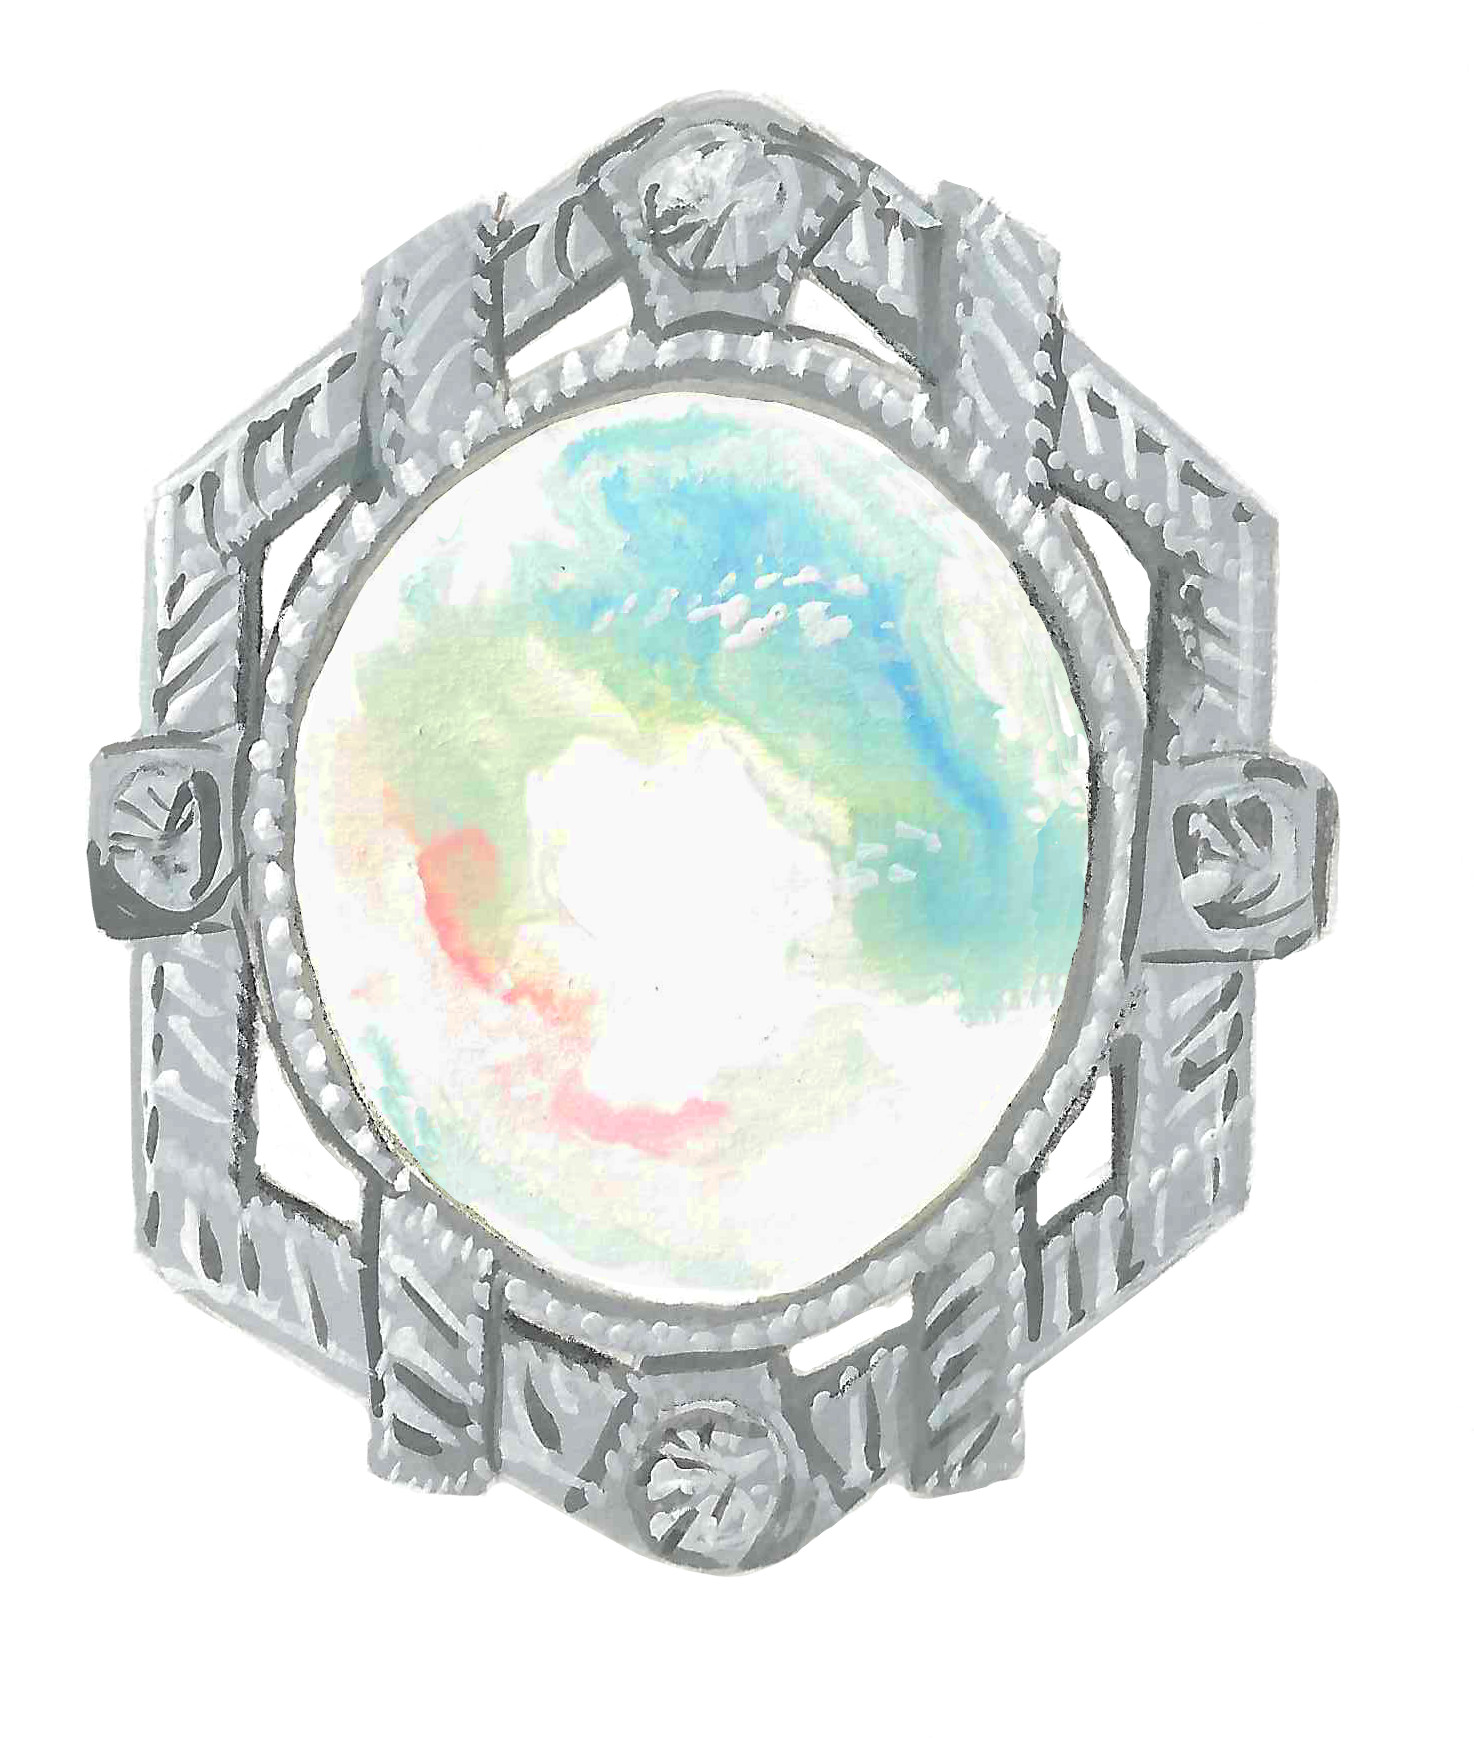 Statement Opal Ring